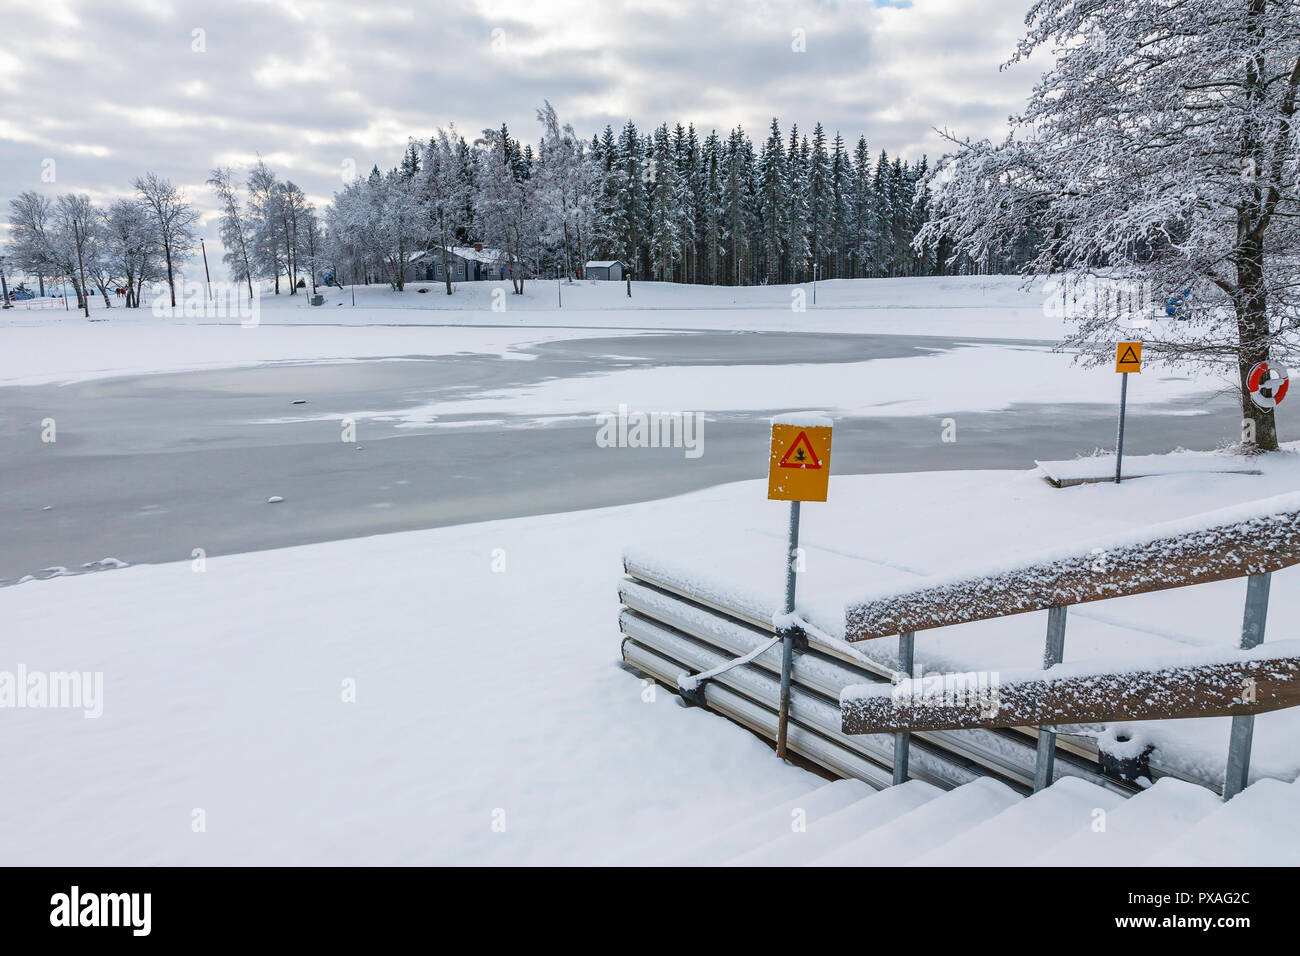 Ice covered lake with a warning sign for thin ice - Stock Image